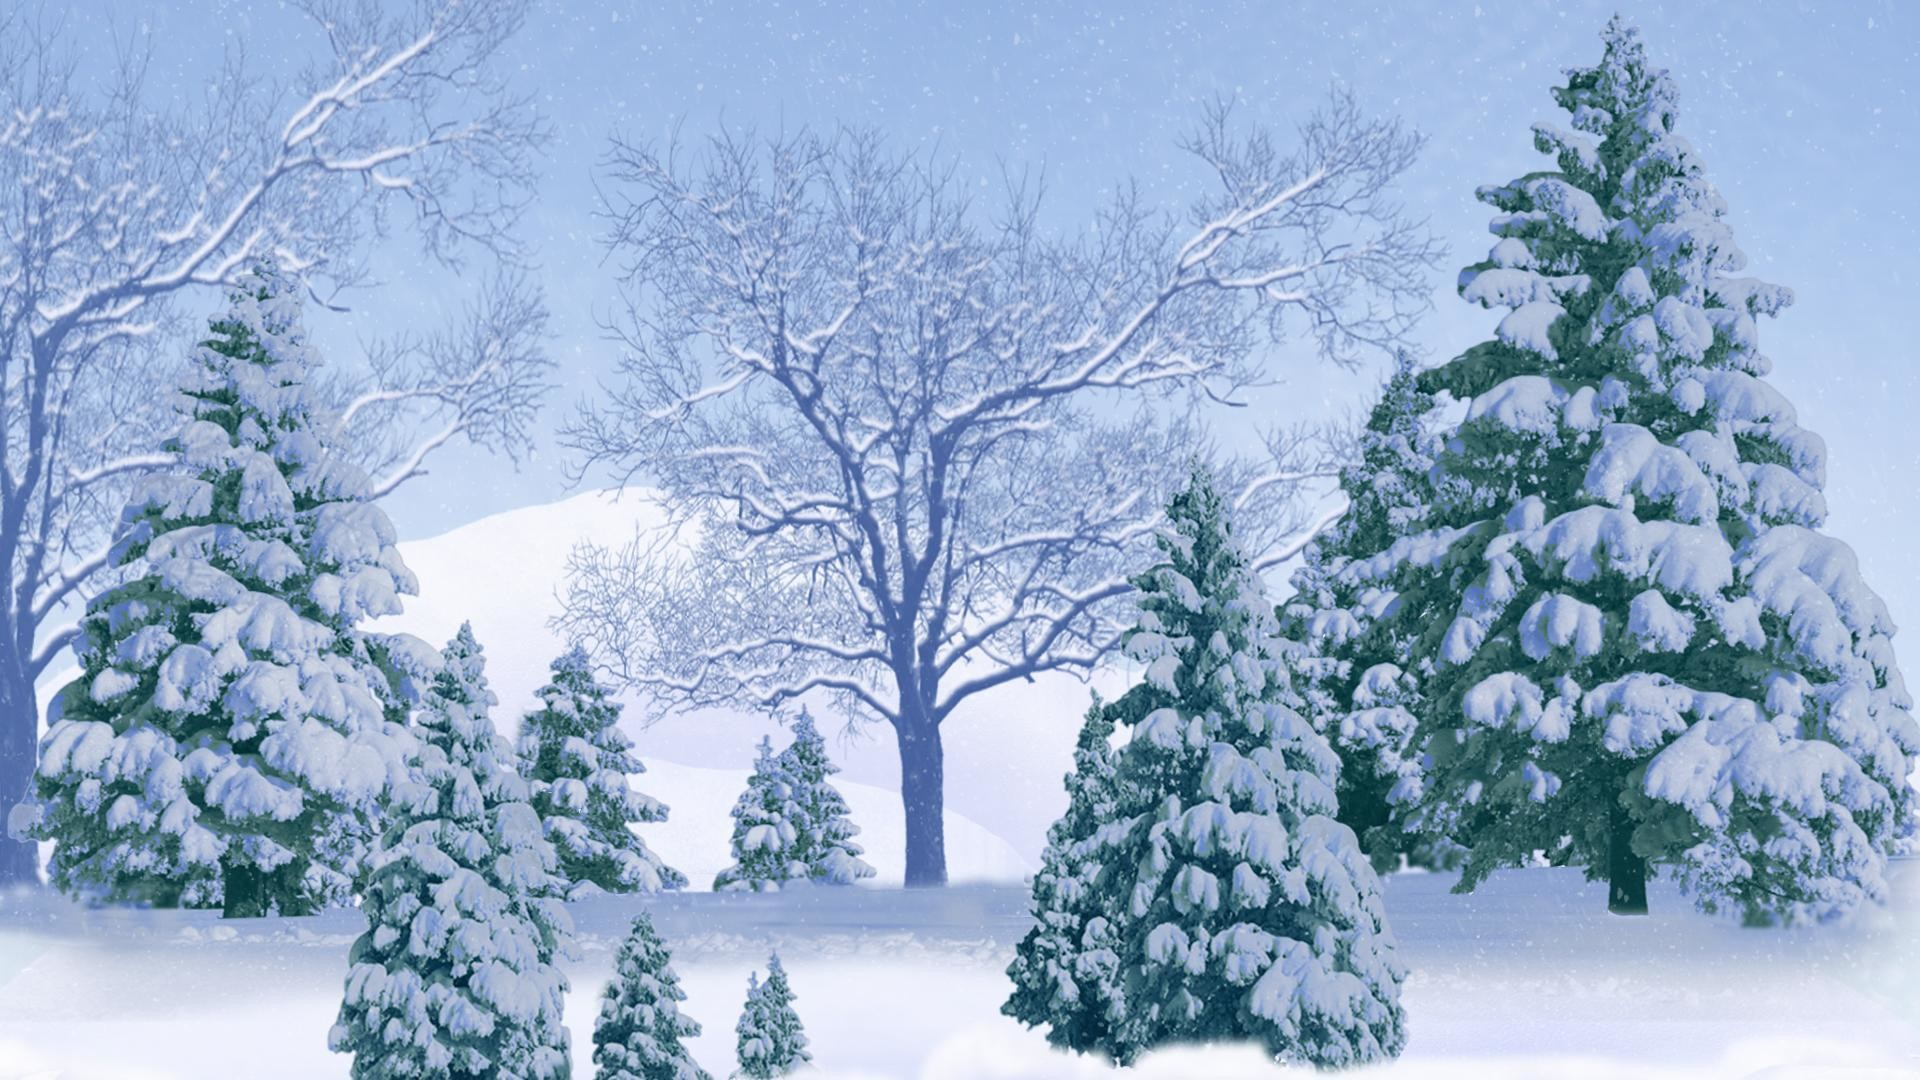 1920x1080  Winter and snow trees white backgrounds wide wallpapers:1280x800,1440x900,1680x1050  -